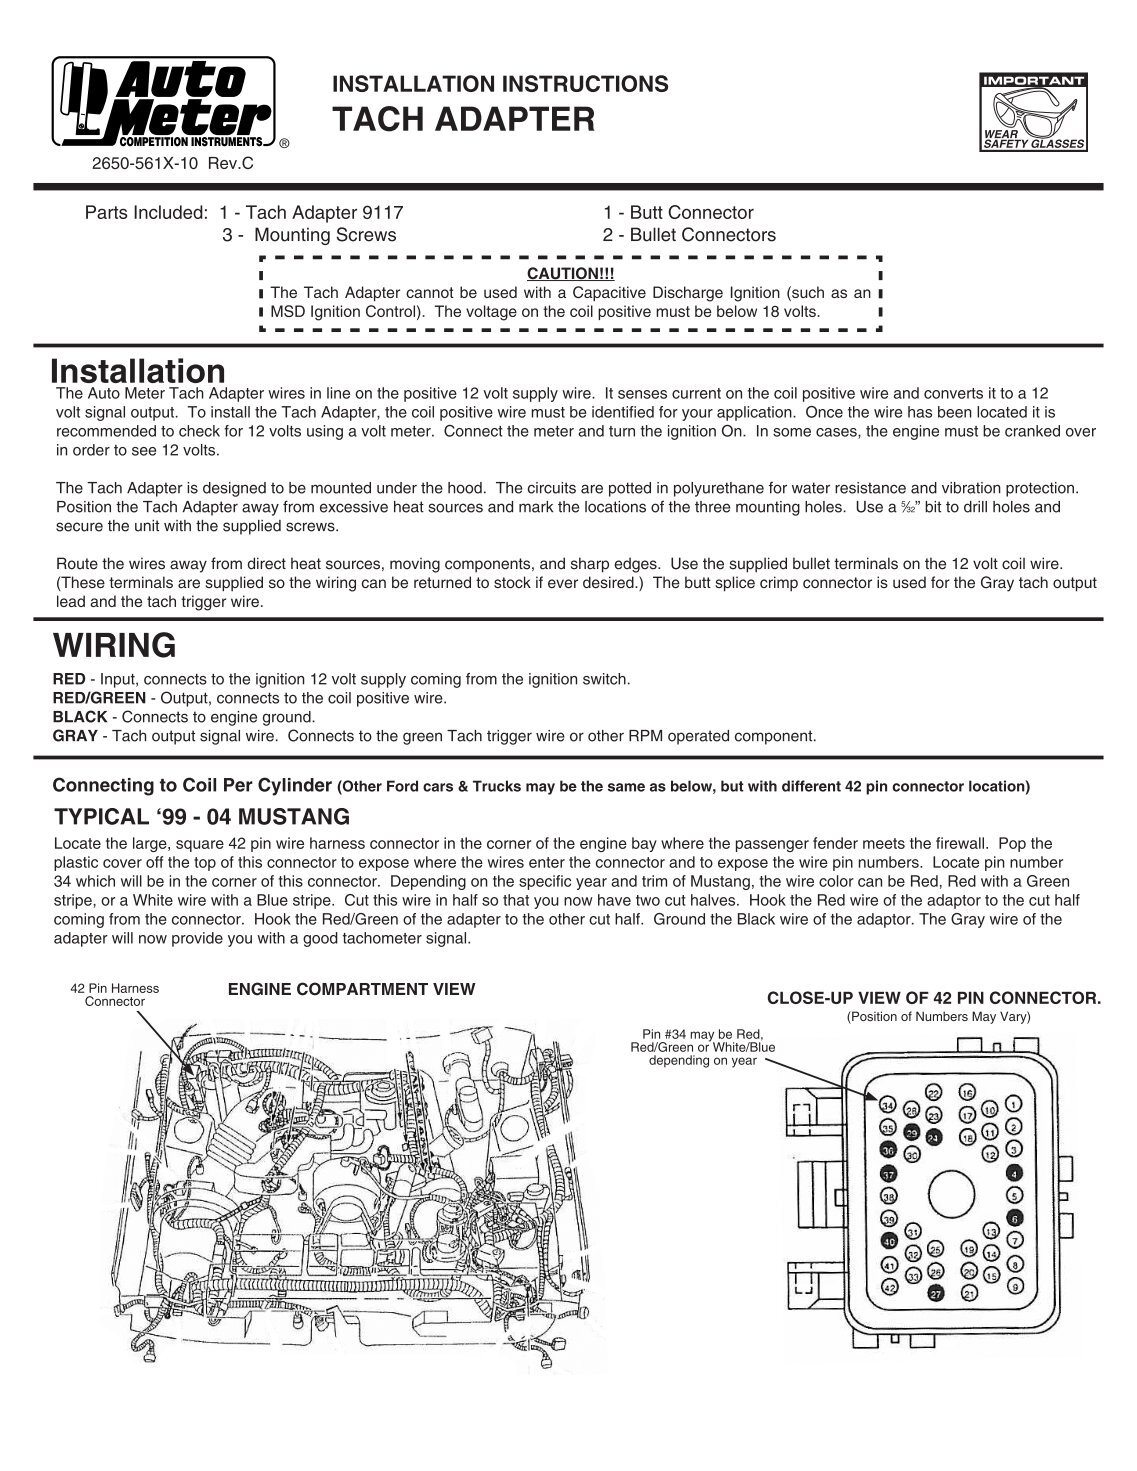 wiring diagram and tach adapter installation instructions auto meter quality 80 pro comp pc [ 1137 x 1471 Pixel ]